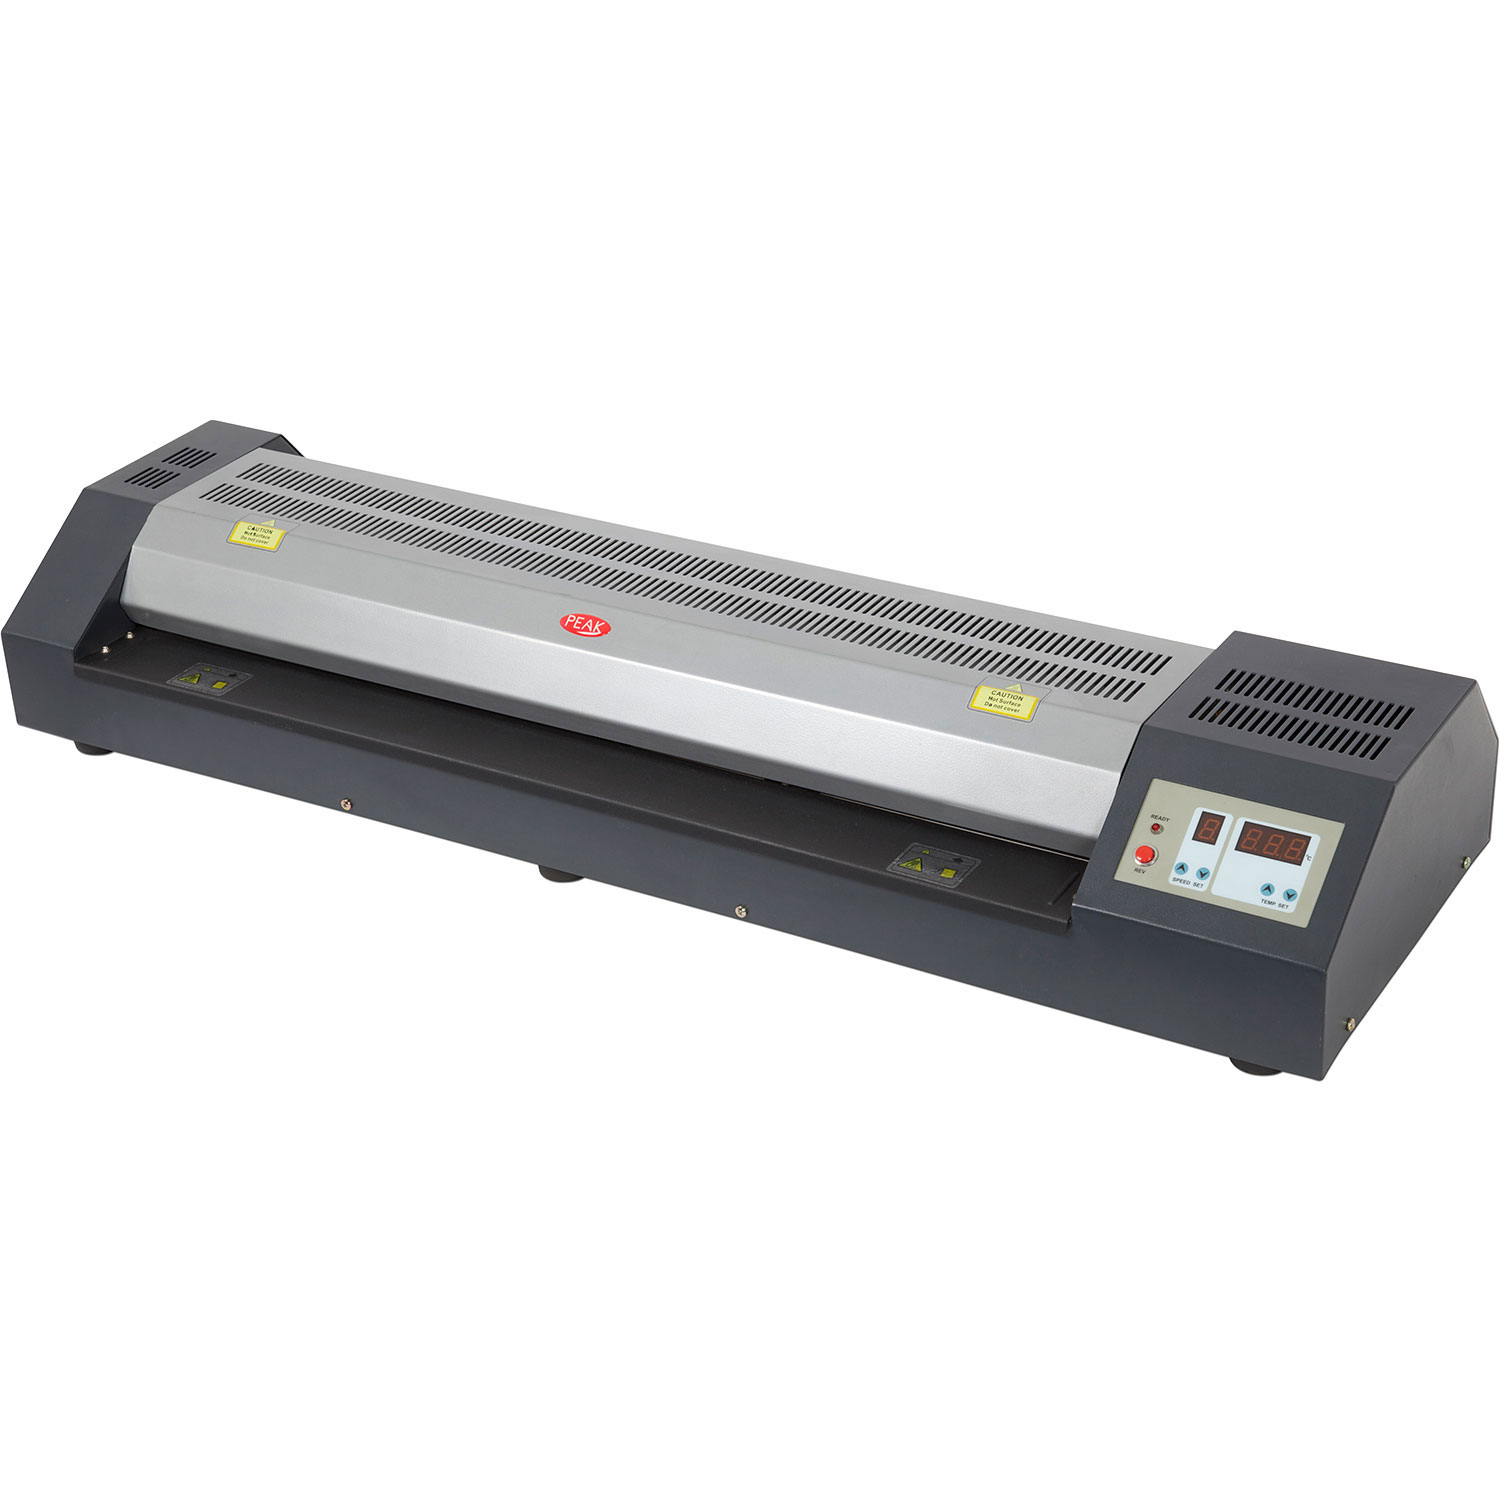 ElmPro PS-700 A1 High-Speed Pouch Laminator